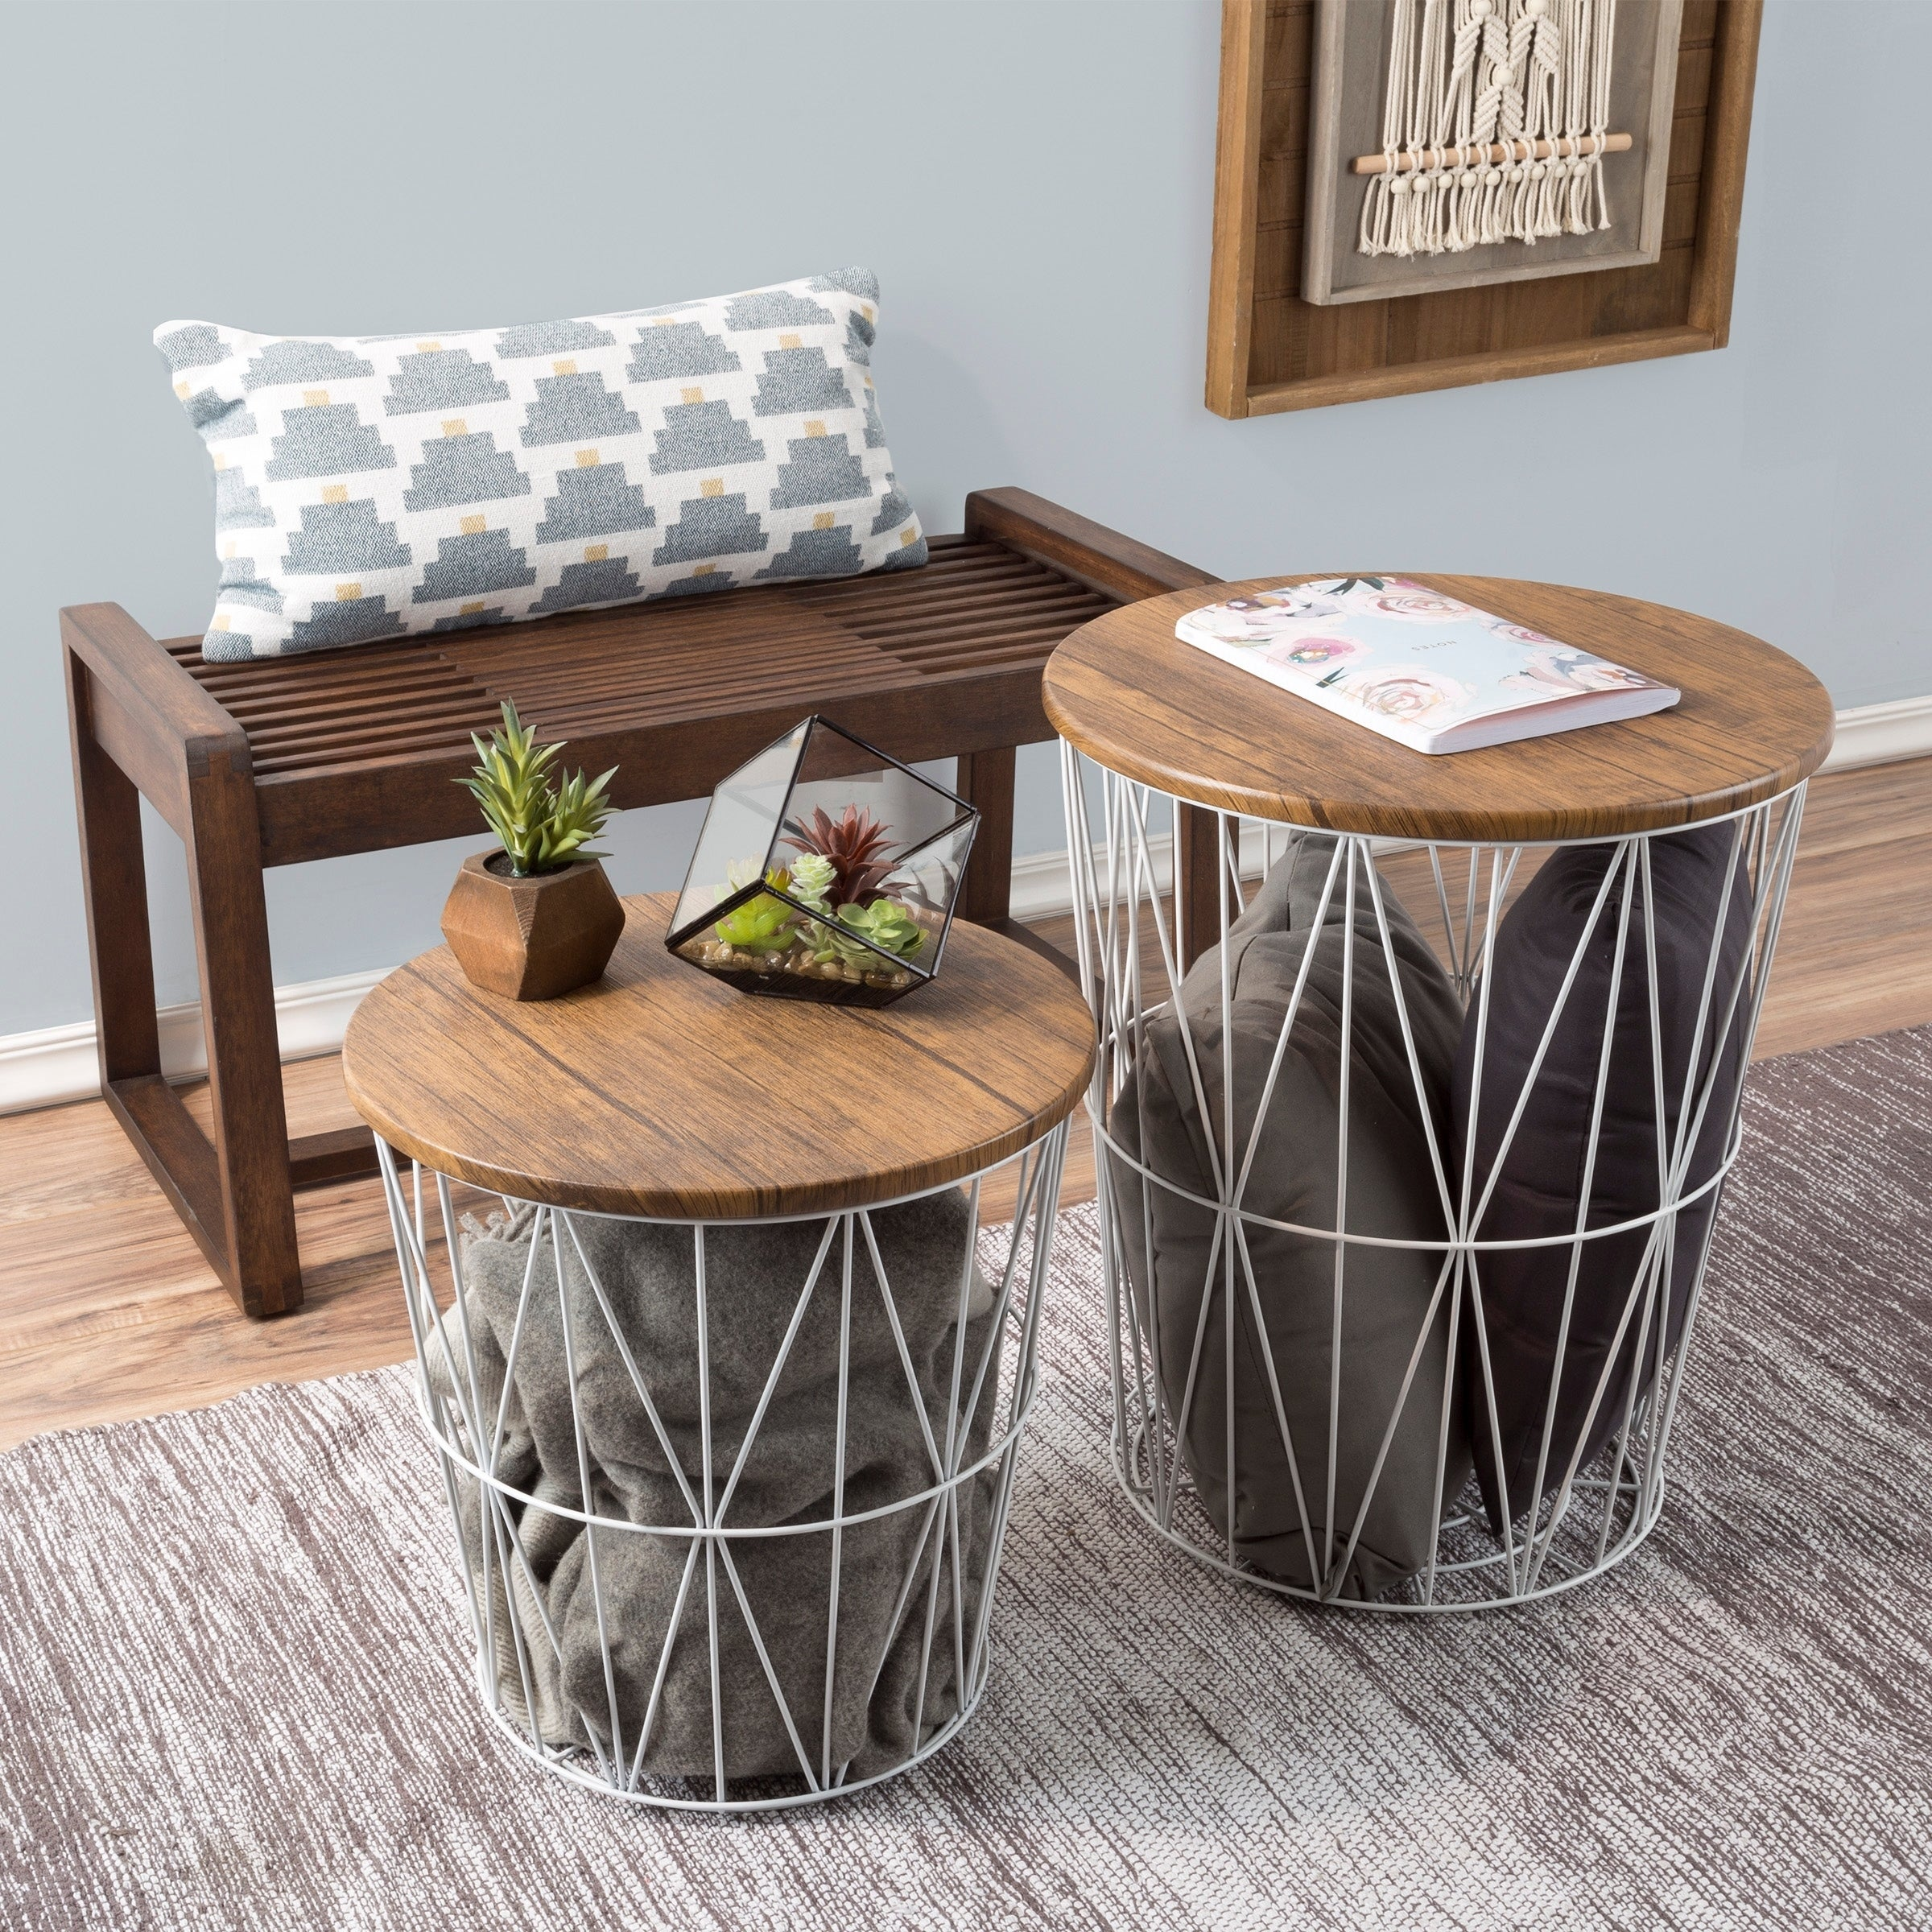 Lavish Home Faux Wood Nesting End Tables With Storage Set Of 2 On Sale Overstock 21294165 White